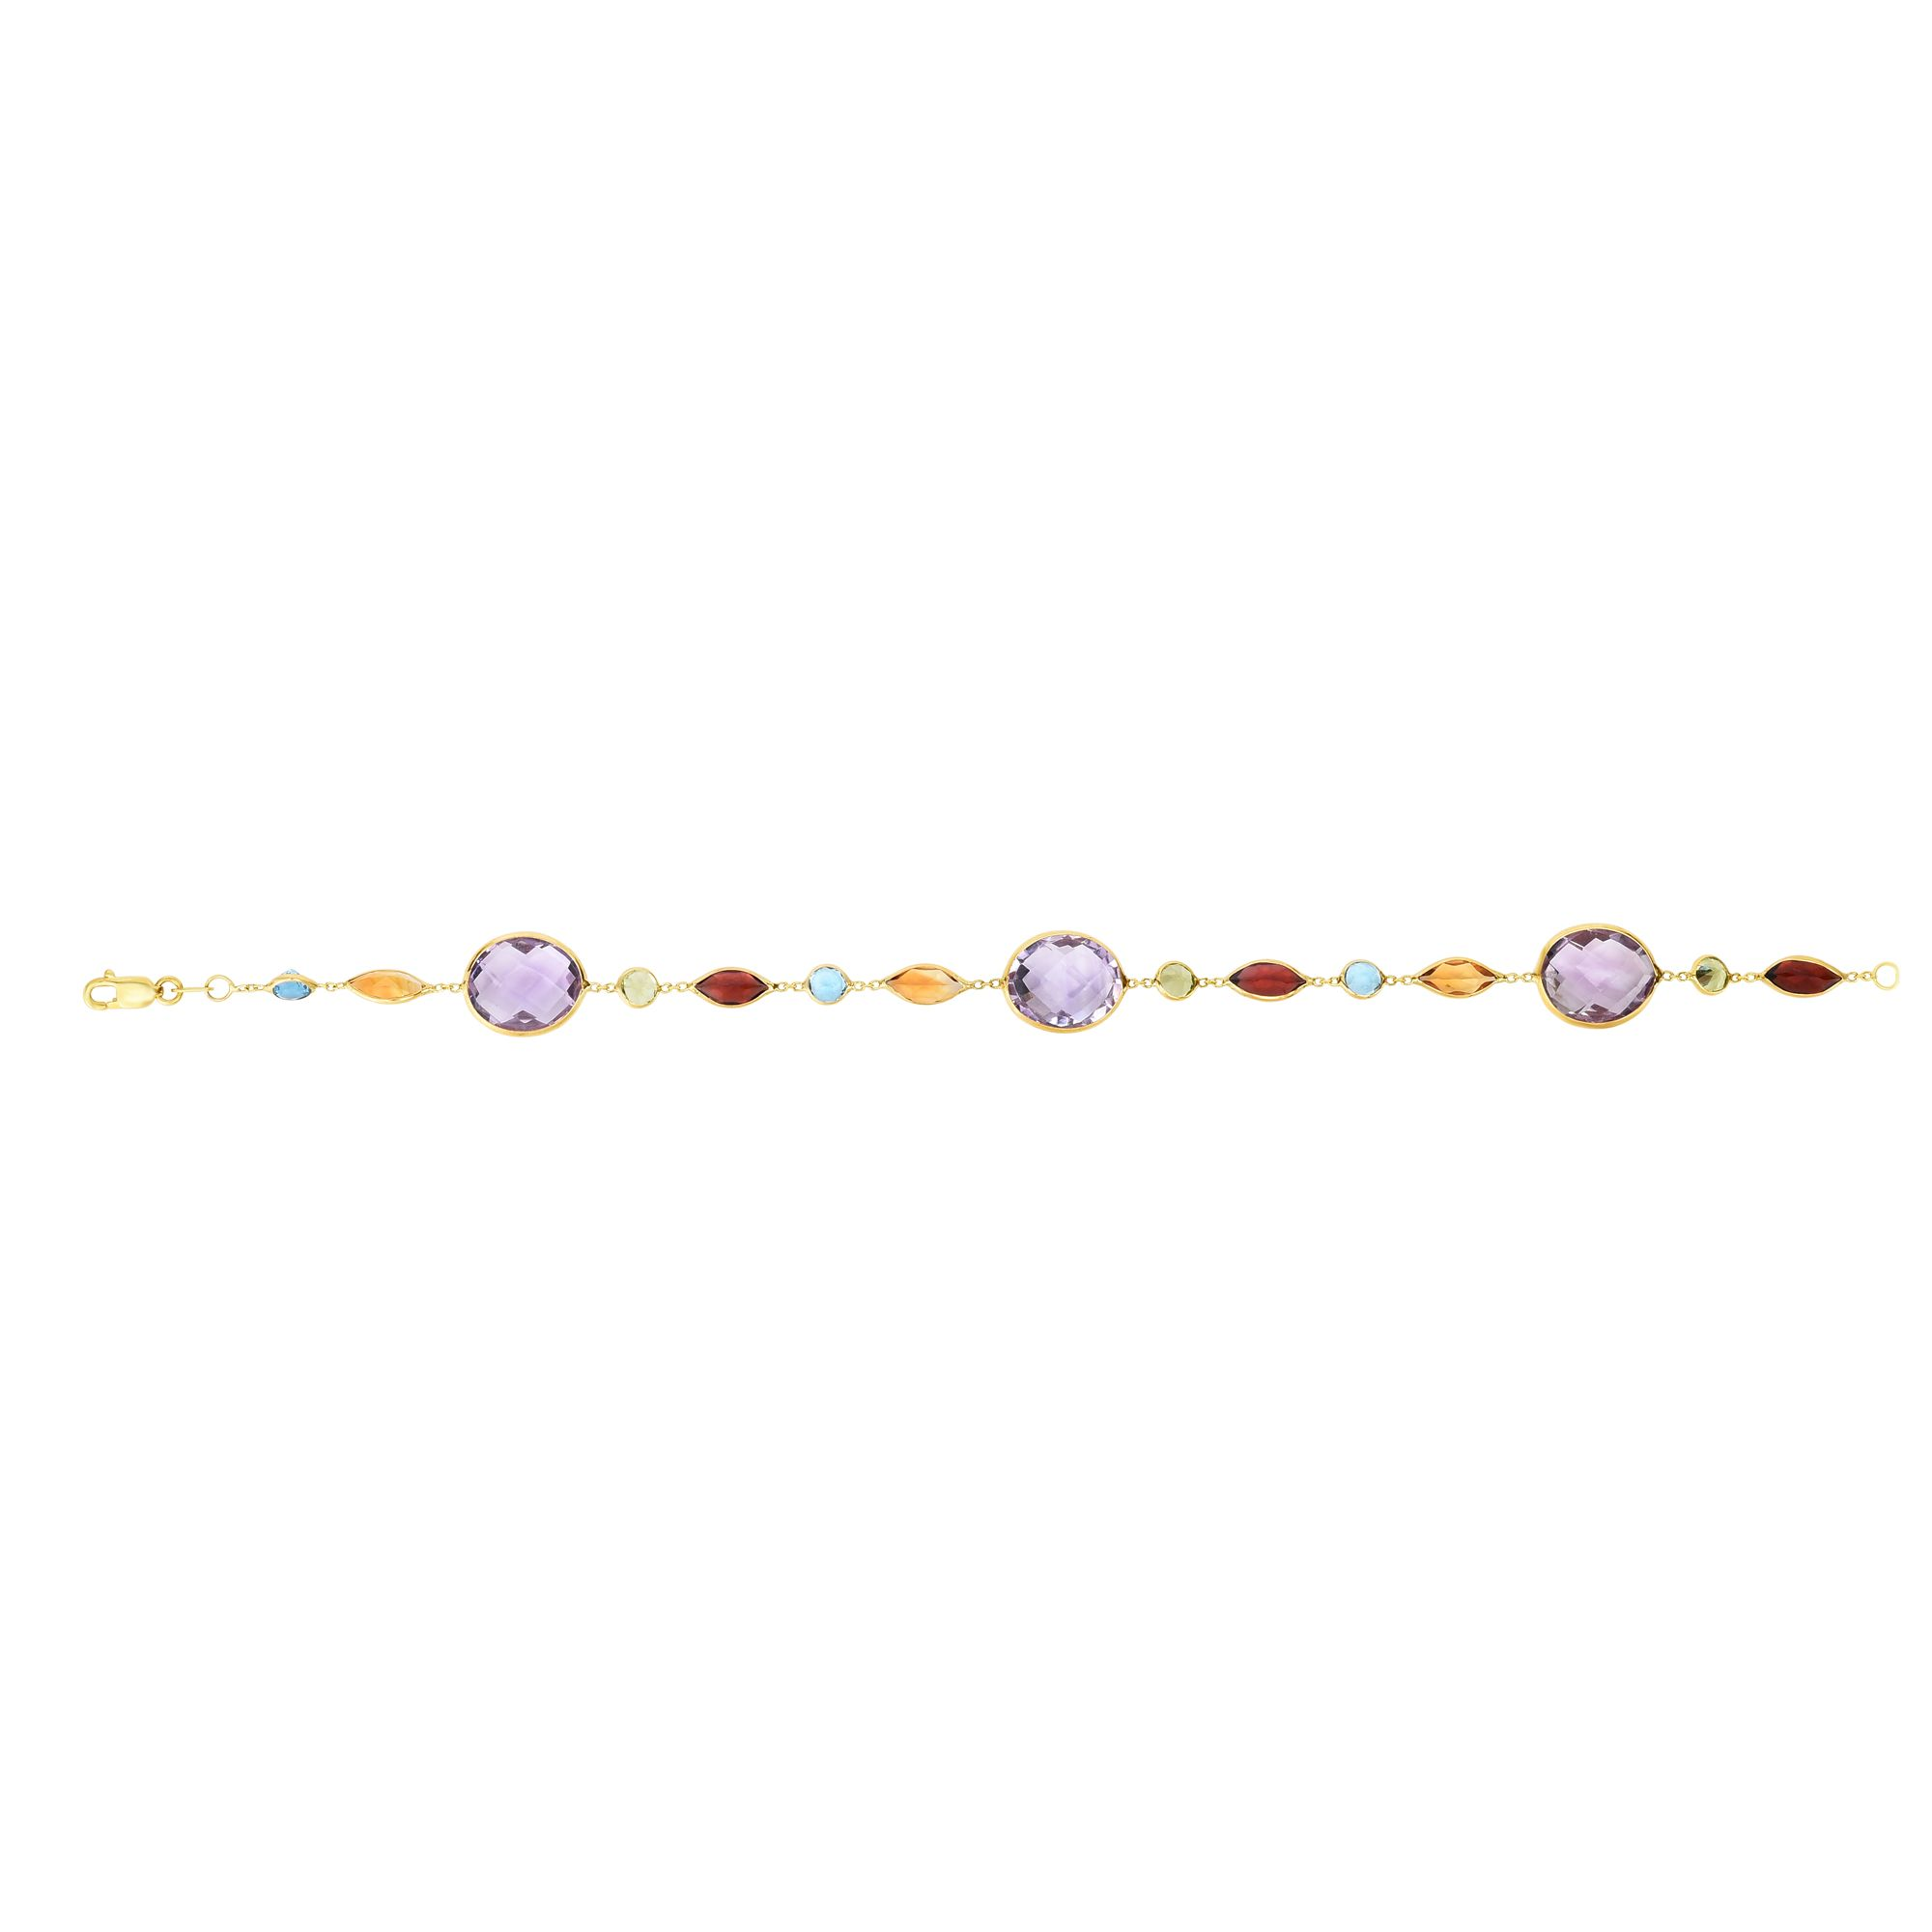 14K Yellow Gold 1mm Cable Bracelet with Alt. Round+Tear Drop Amethyst Stations with Lobster Clasp by Goldia